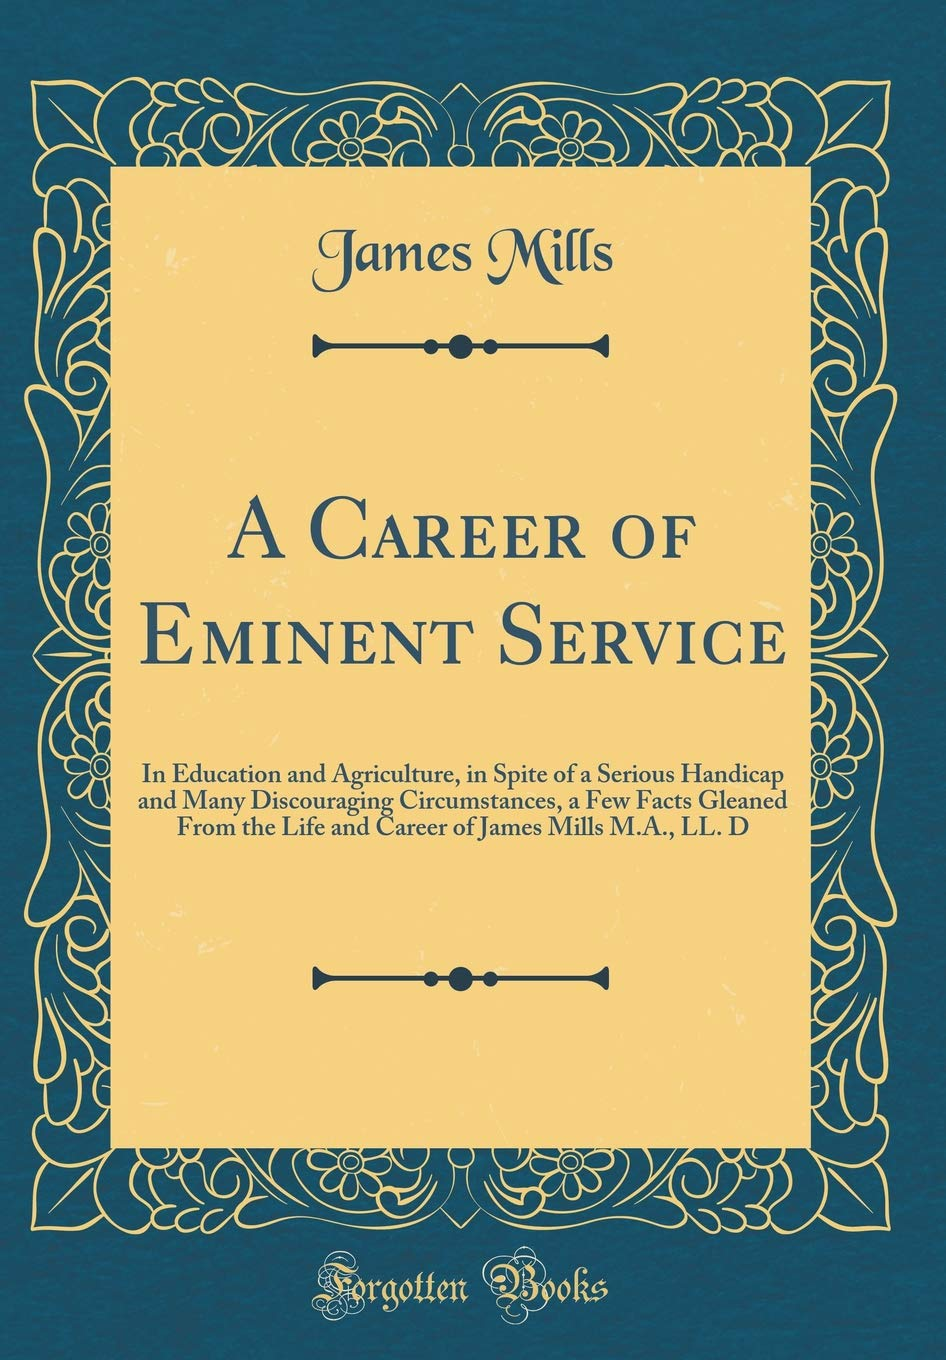 Download A Career of Eminent Service: In Education and Agriculture, in Spite of a Serious Handicap and Many Discouraging Circumstances, a Few Facts Gleaned ... of James Mills M.A., LL. D (Classic Reprint) pdf